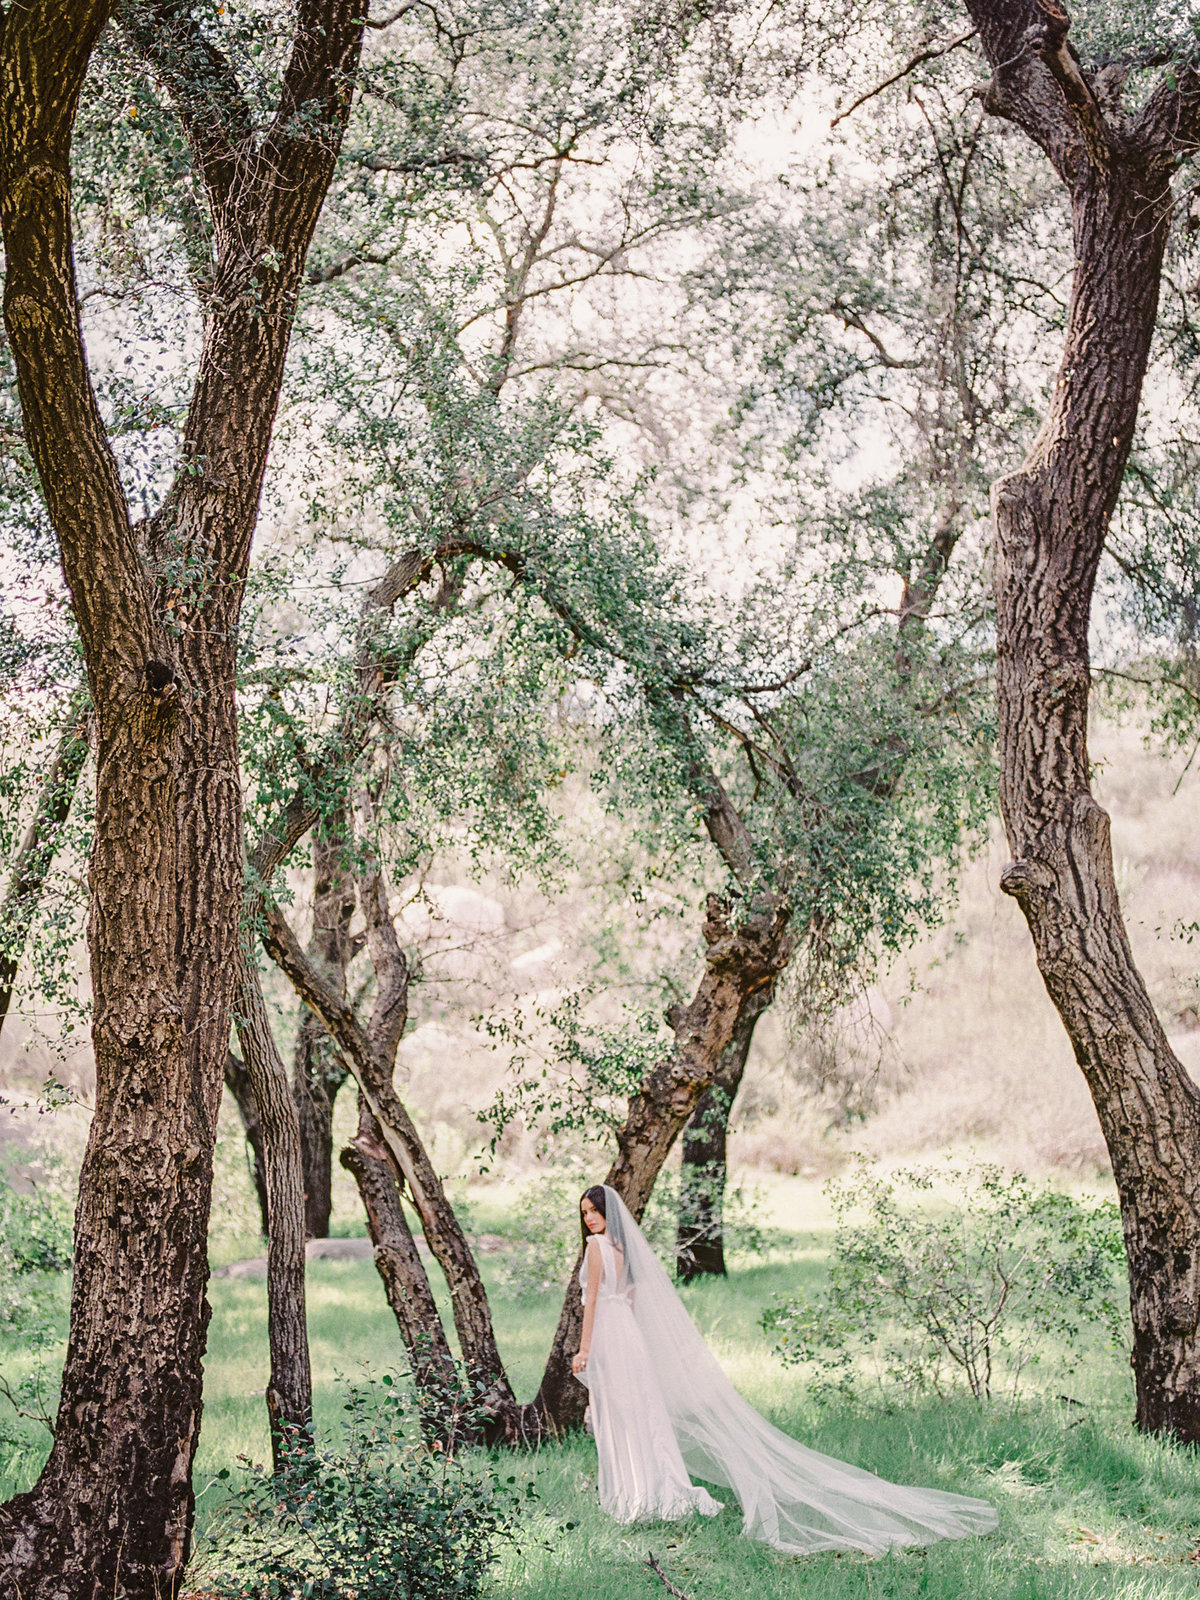 Babsie-Ly-Photography-Fine-Art-Film-Wedding-Bridal-Editorial-in-Hidden-Oaks-San-Diego-024